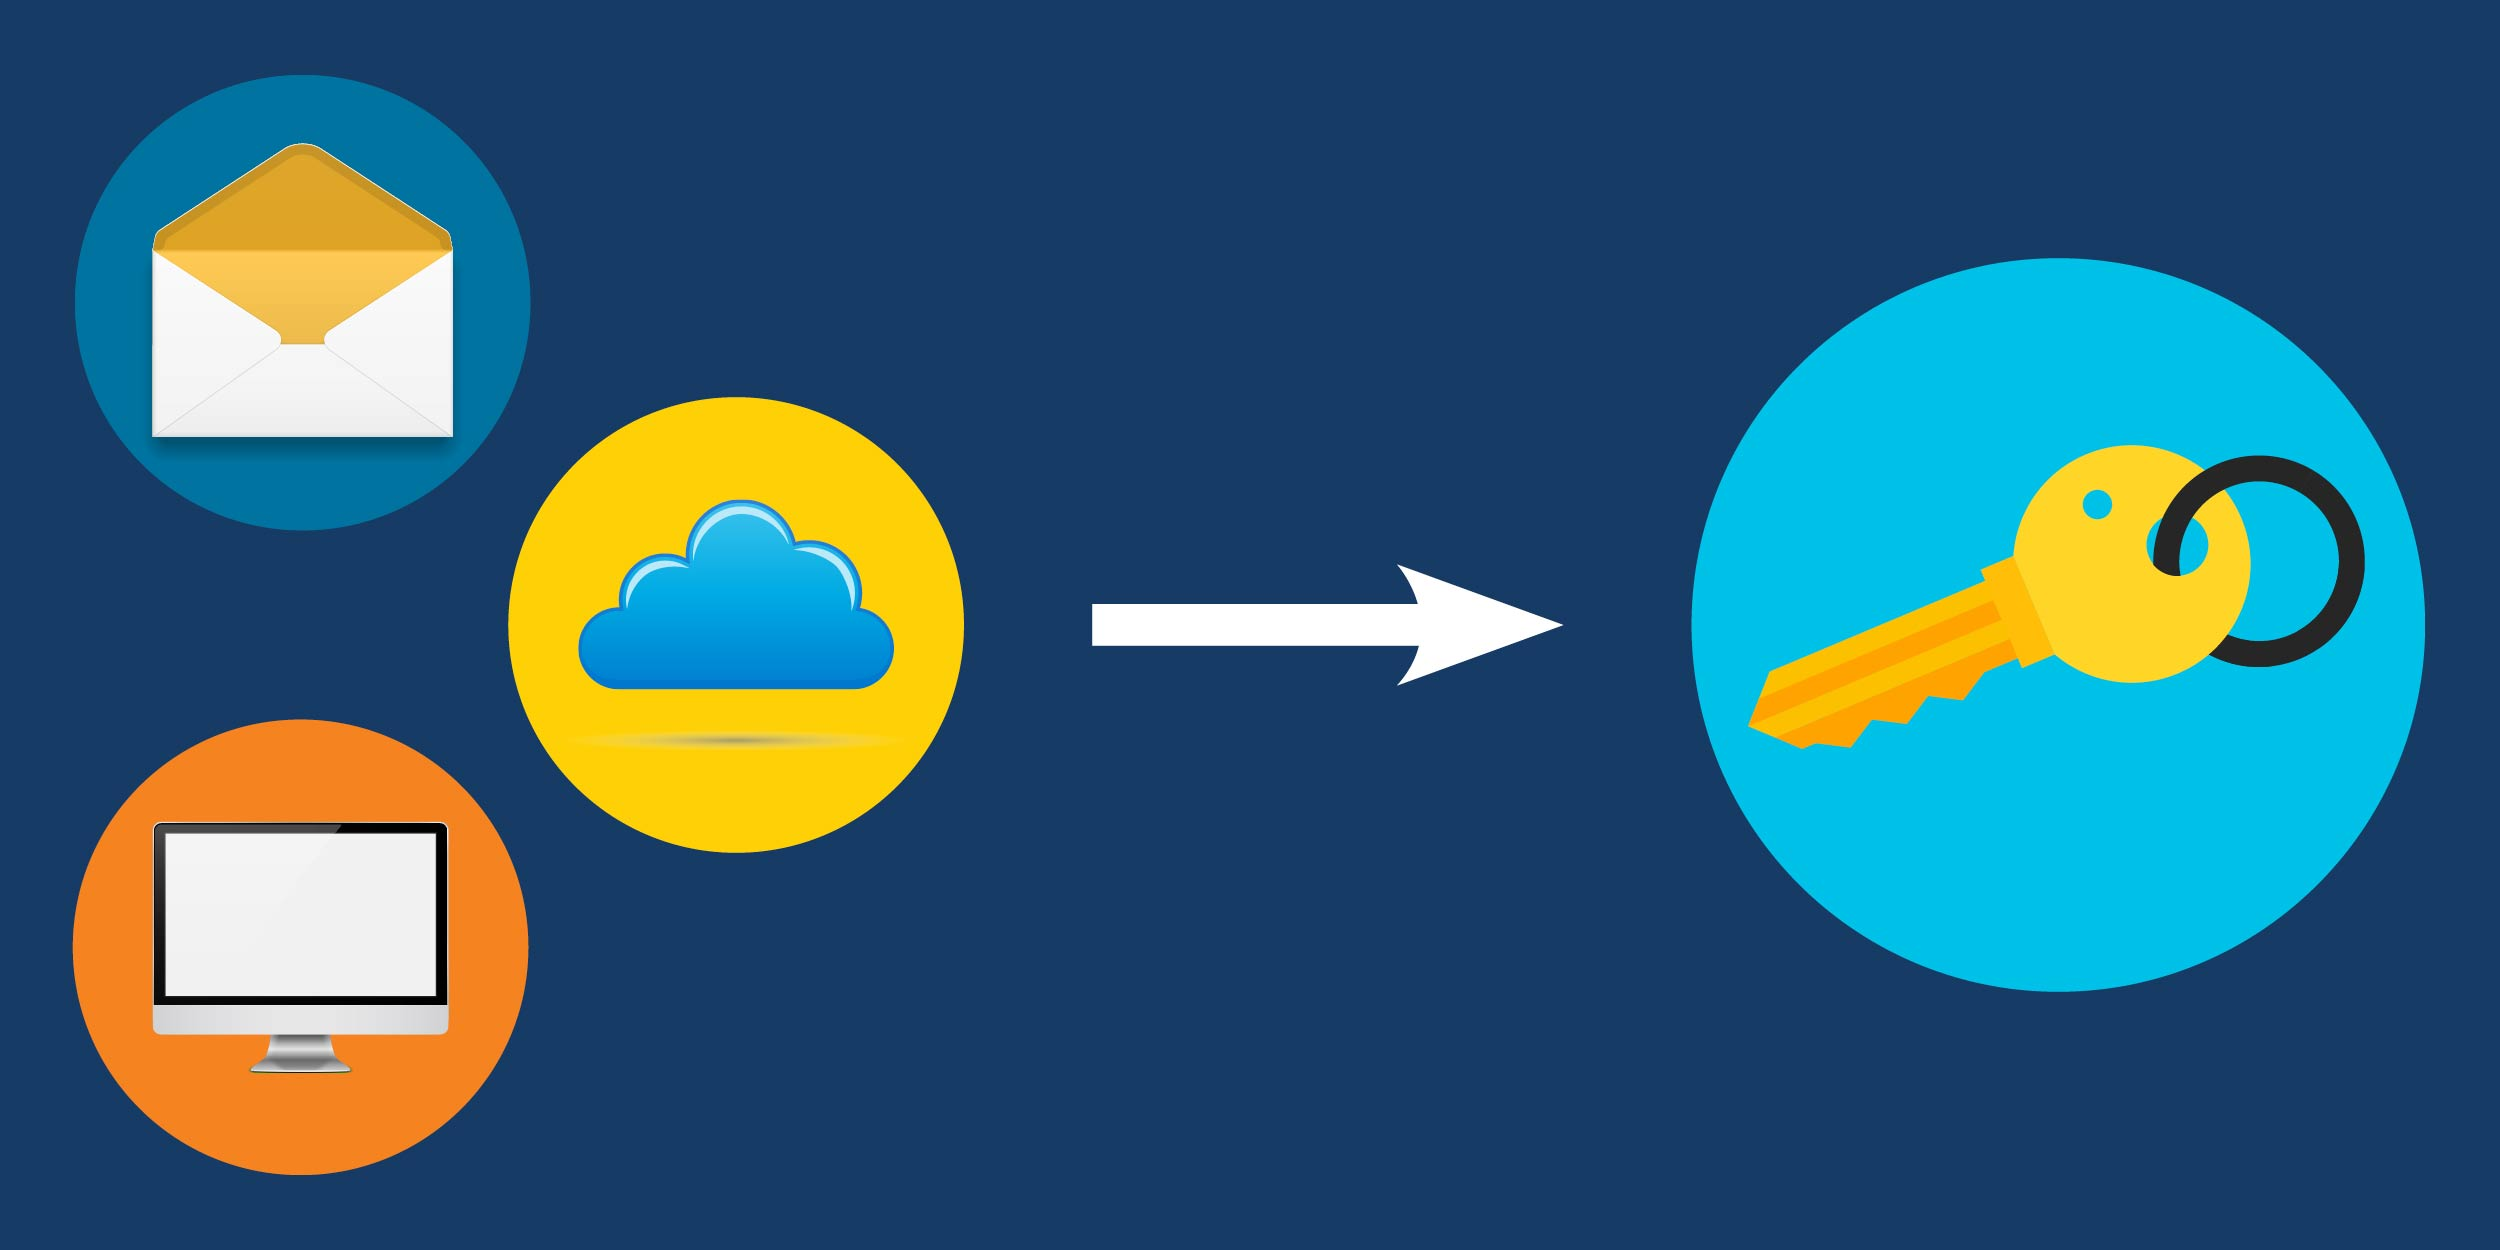 illustration showing an open envelope, a computer monitor, and a cloud pointing at a key symbolizing identity management through Okta for Good